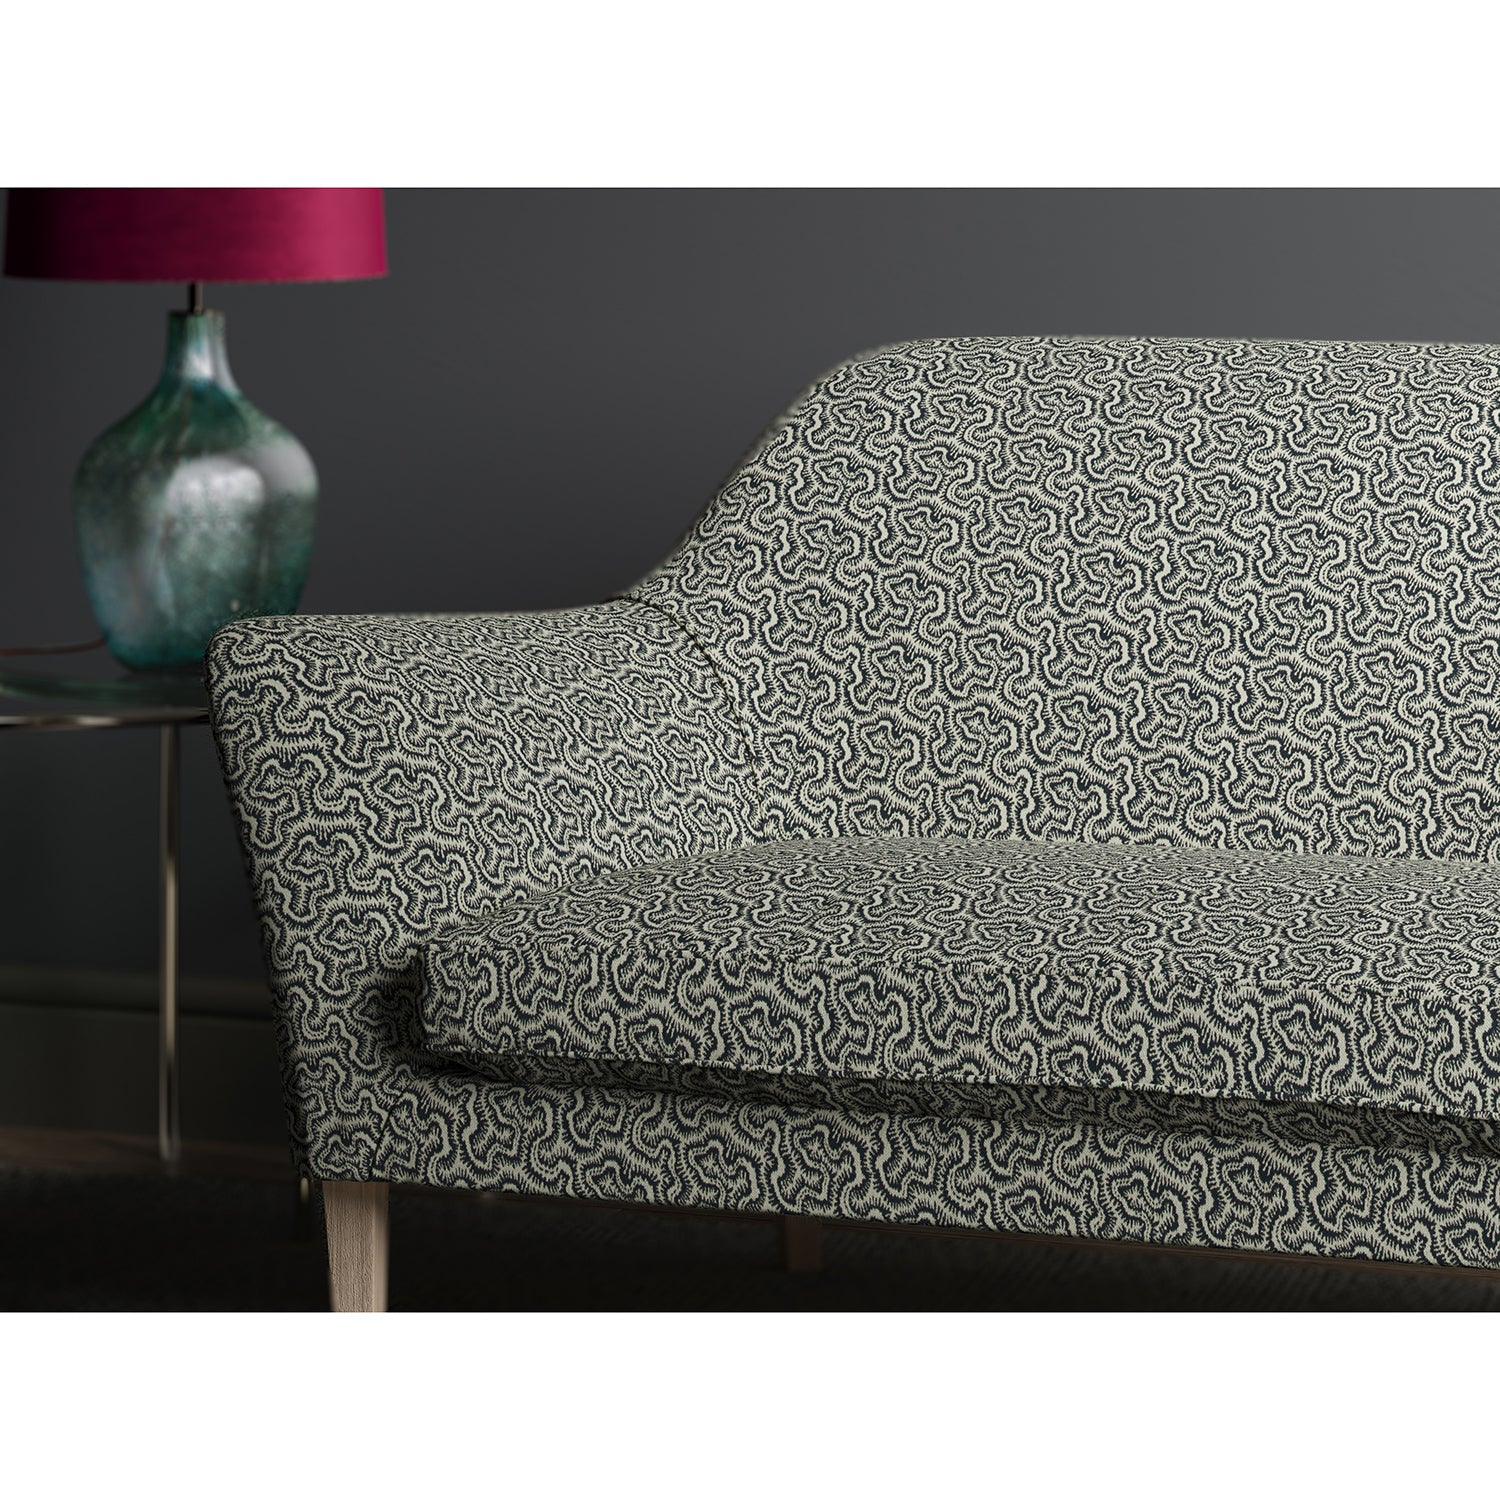 Sofa upholstered in design name Polka, colourway Midnight.